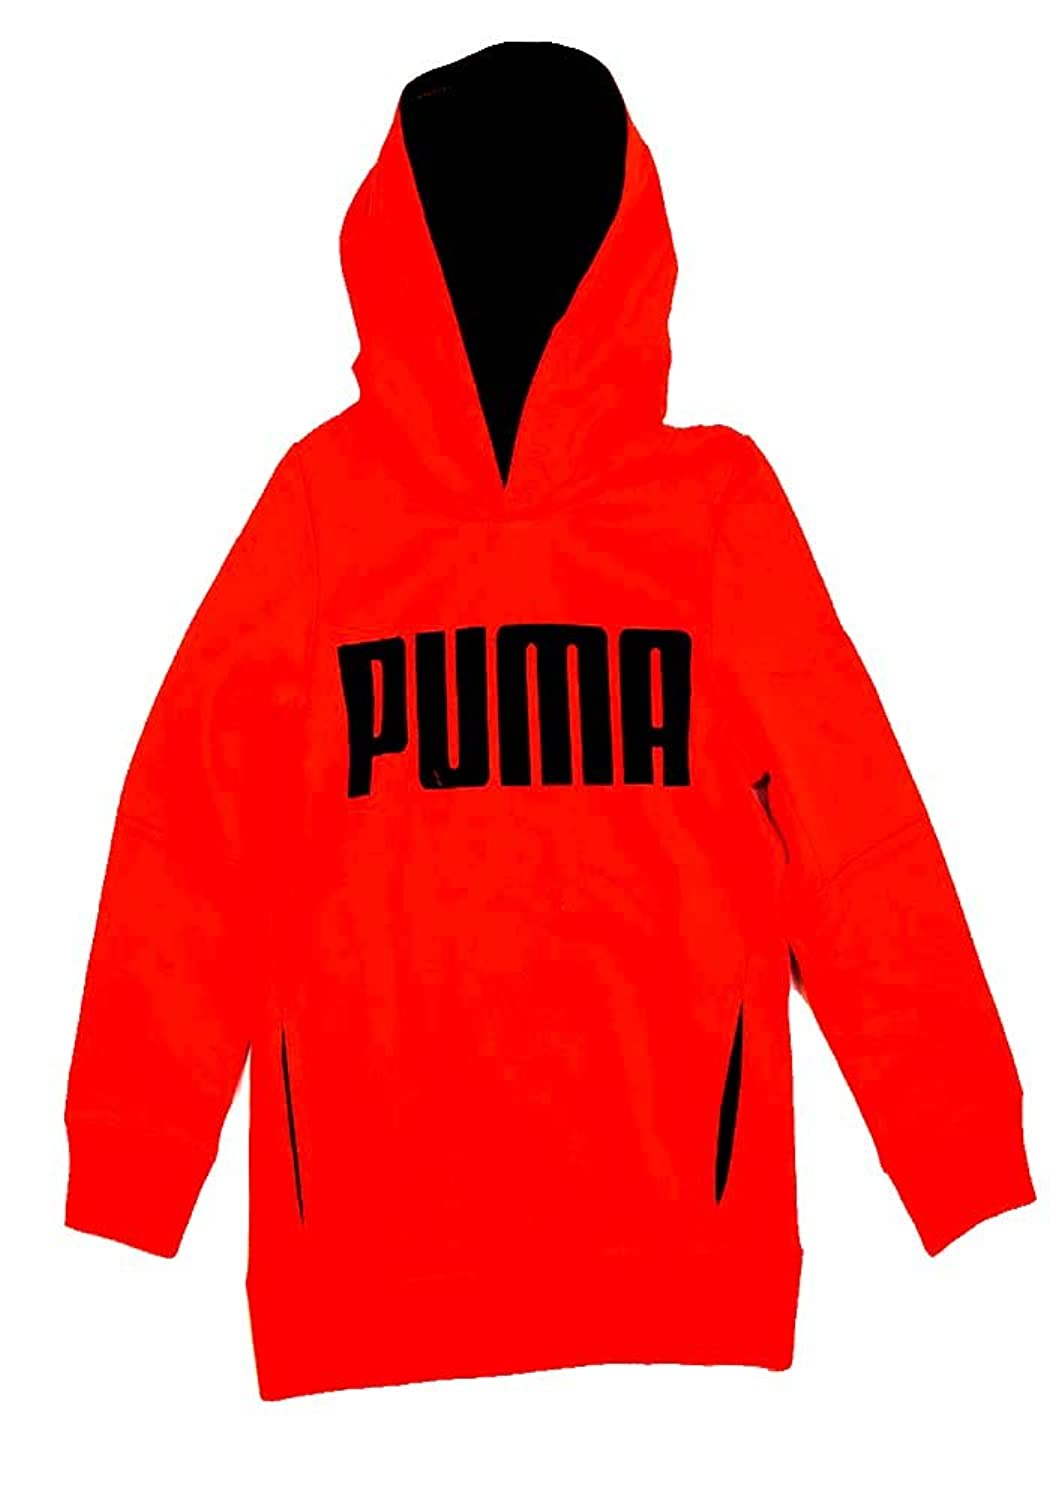 puma- Pullover Red Boys for cheap